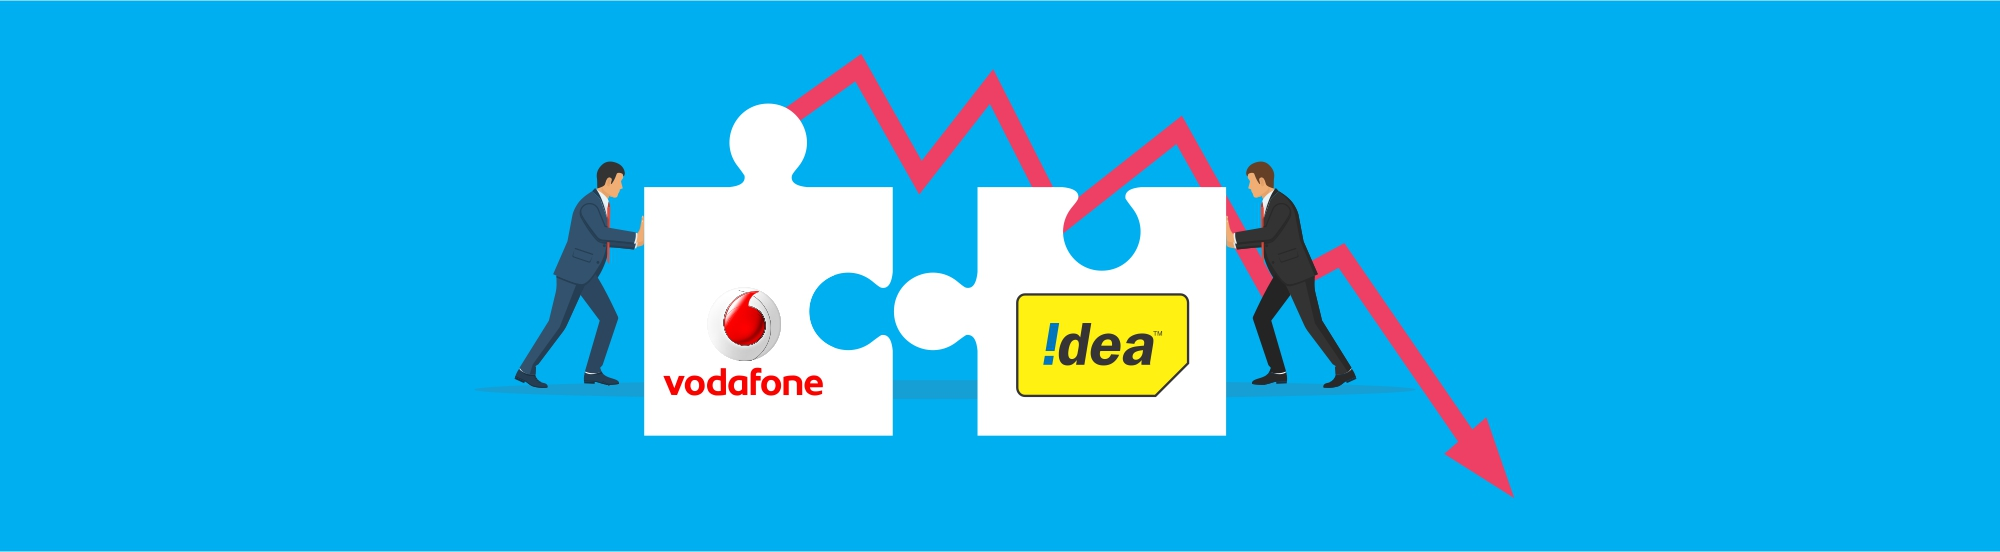 Vodafone Idea Downgrade